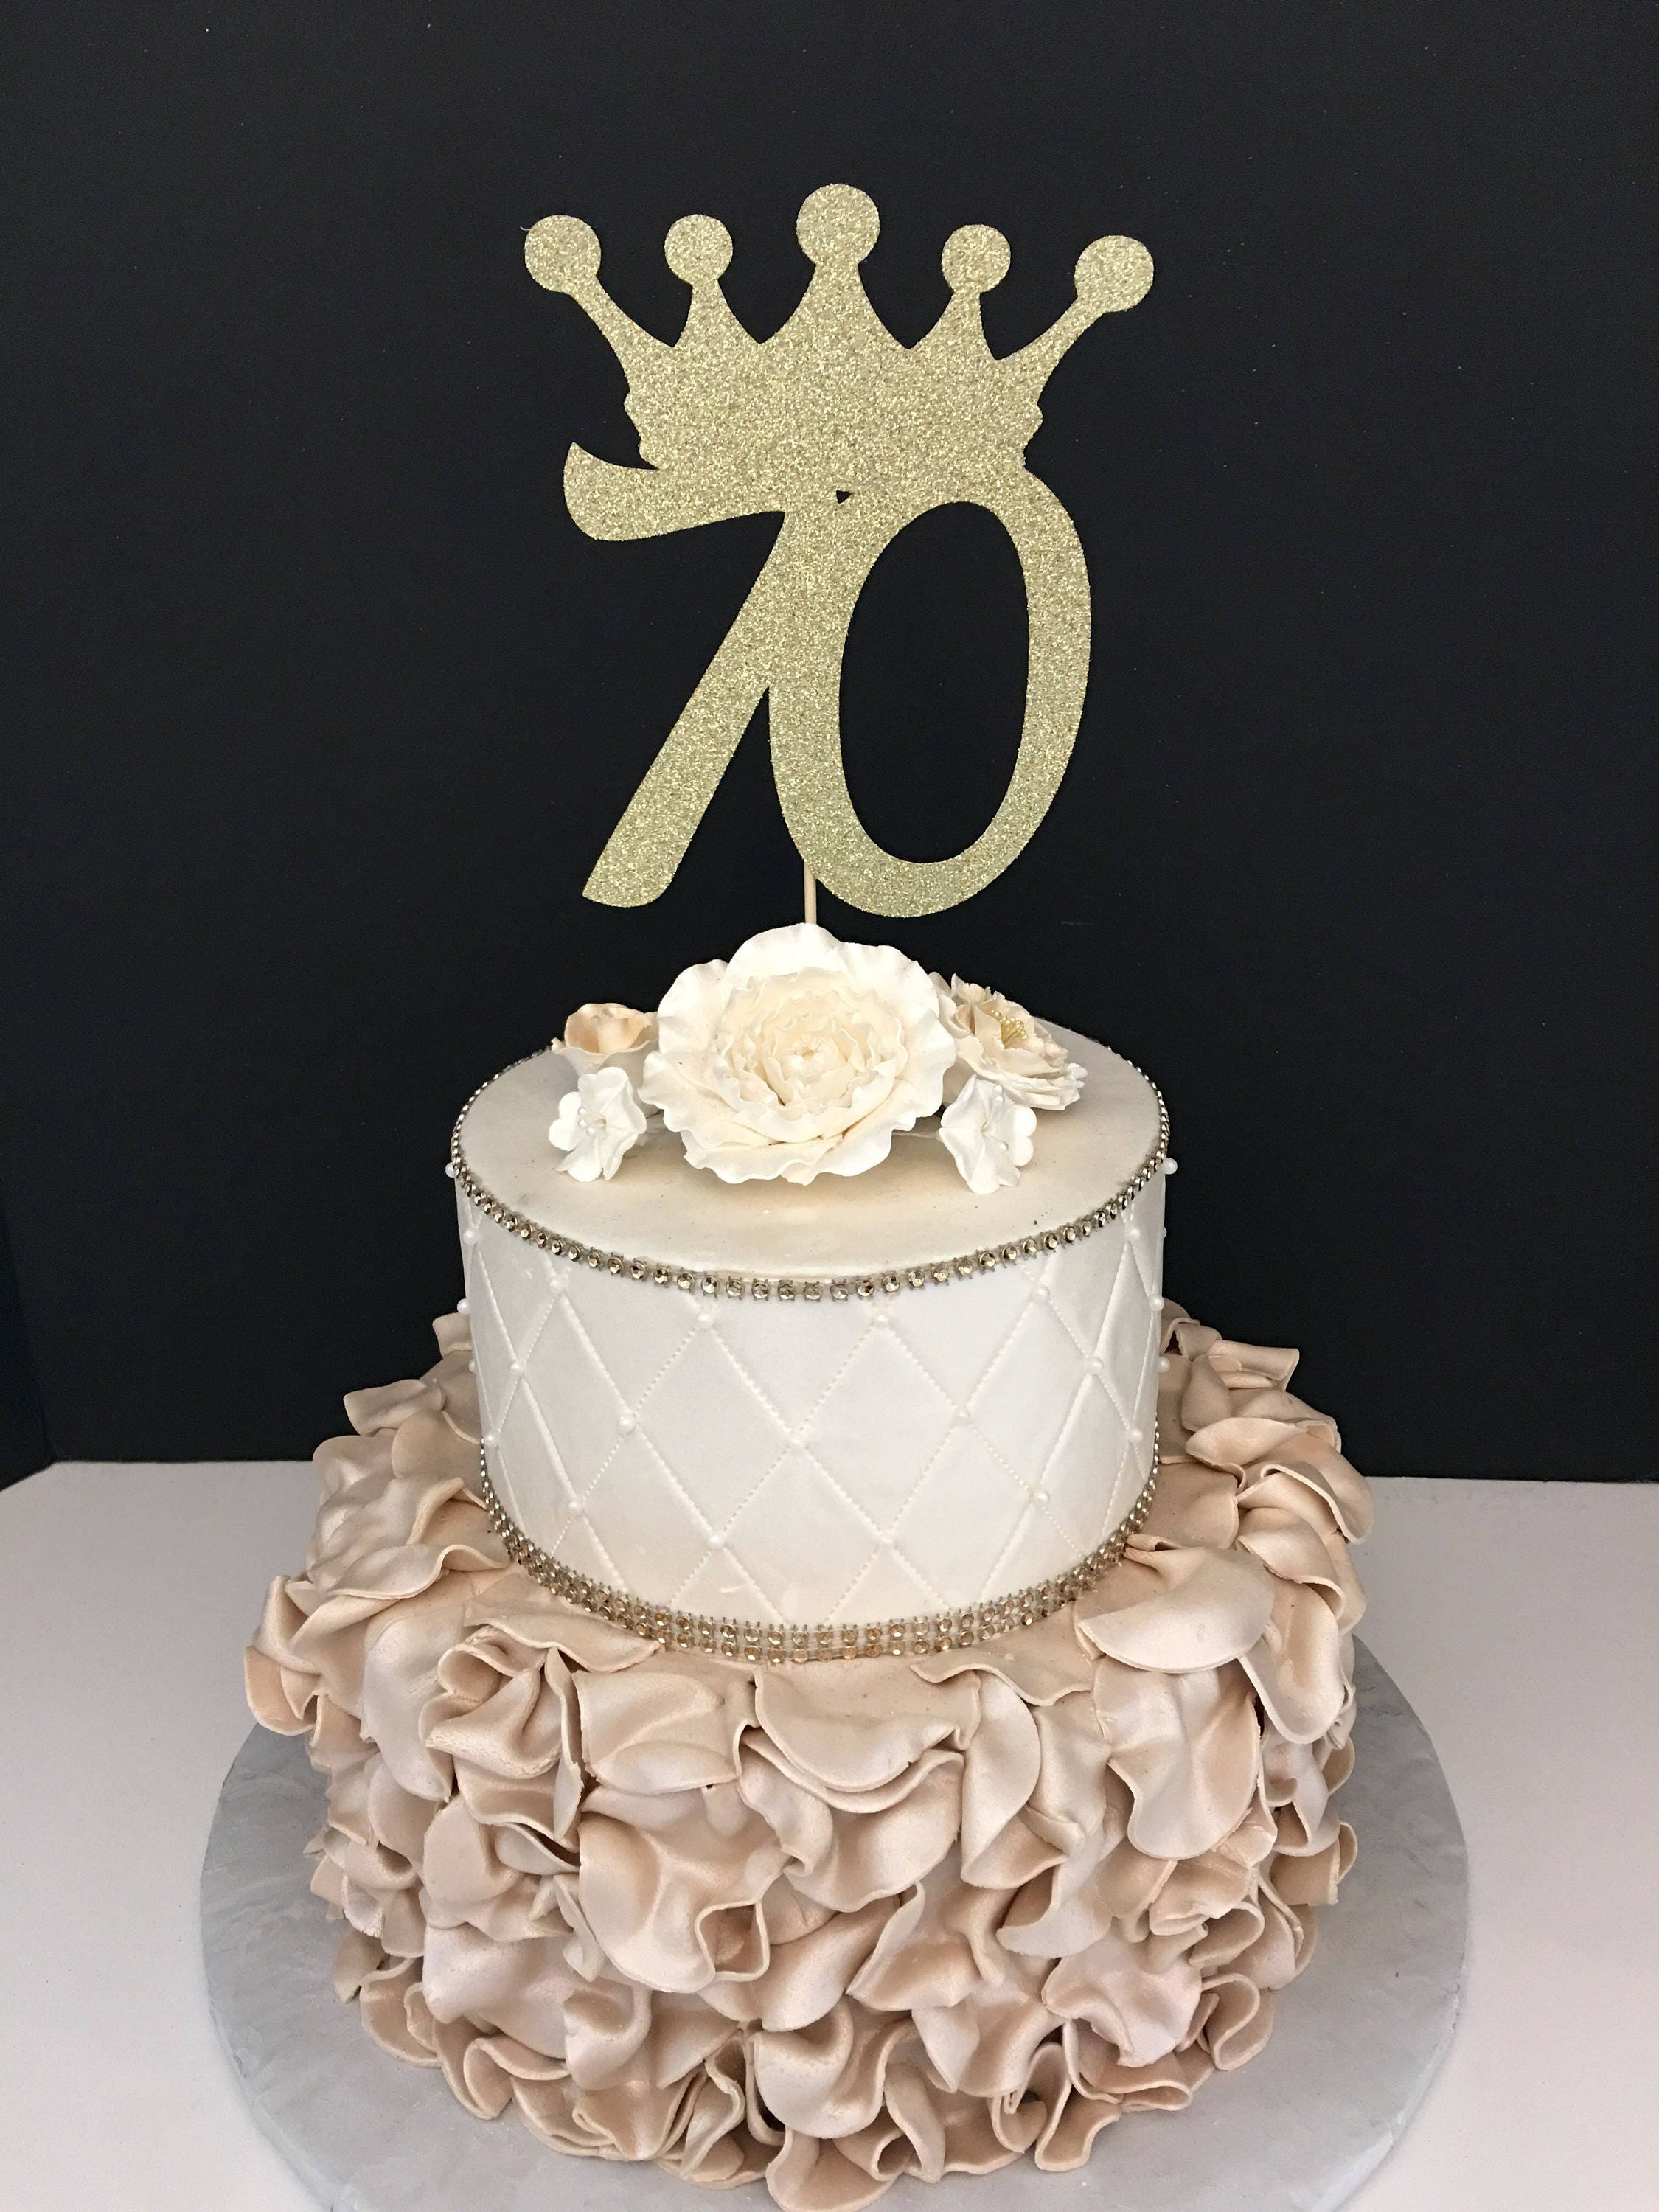 Any Number Gold Glitter 70th Birthday Cake Topper Number